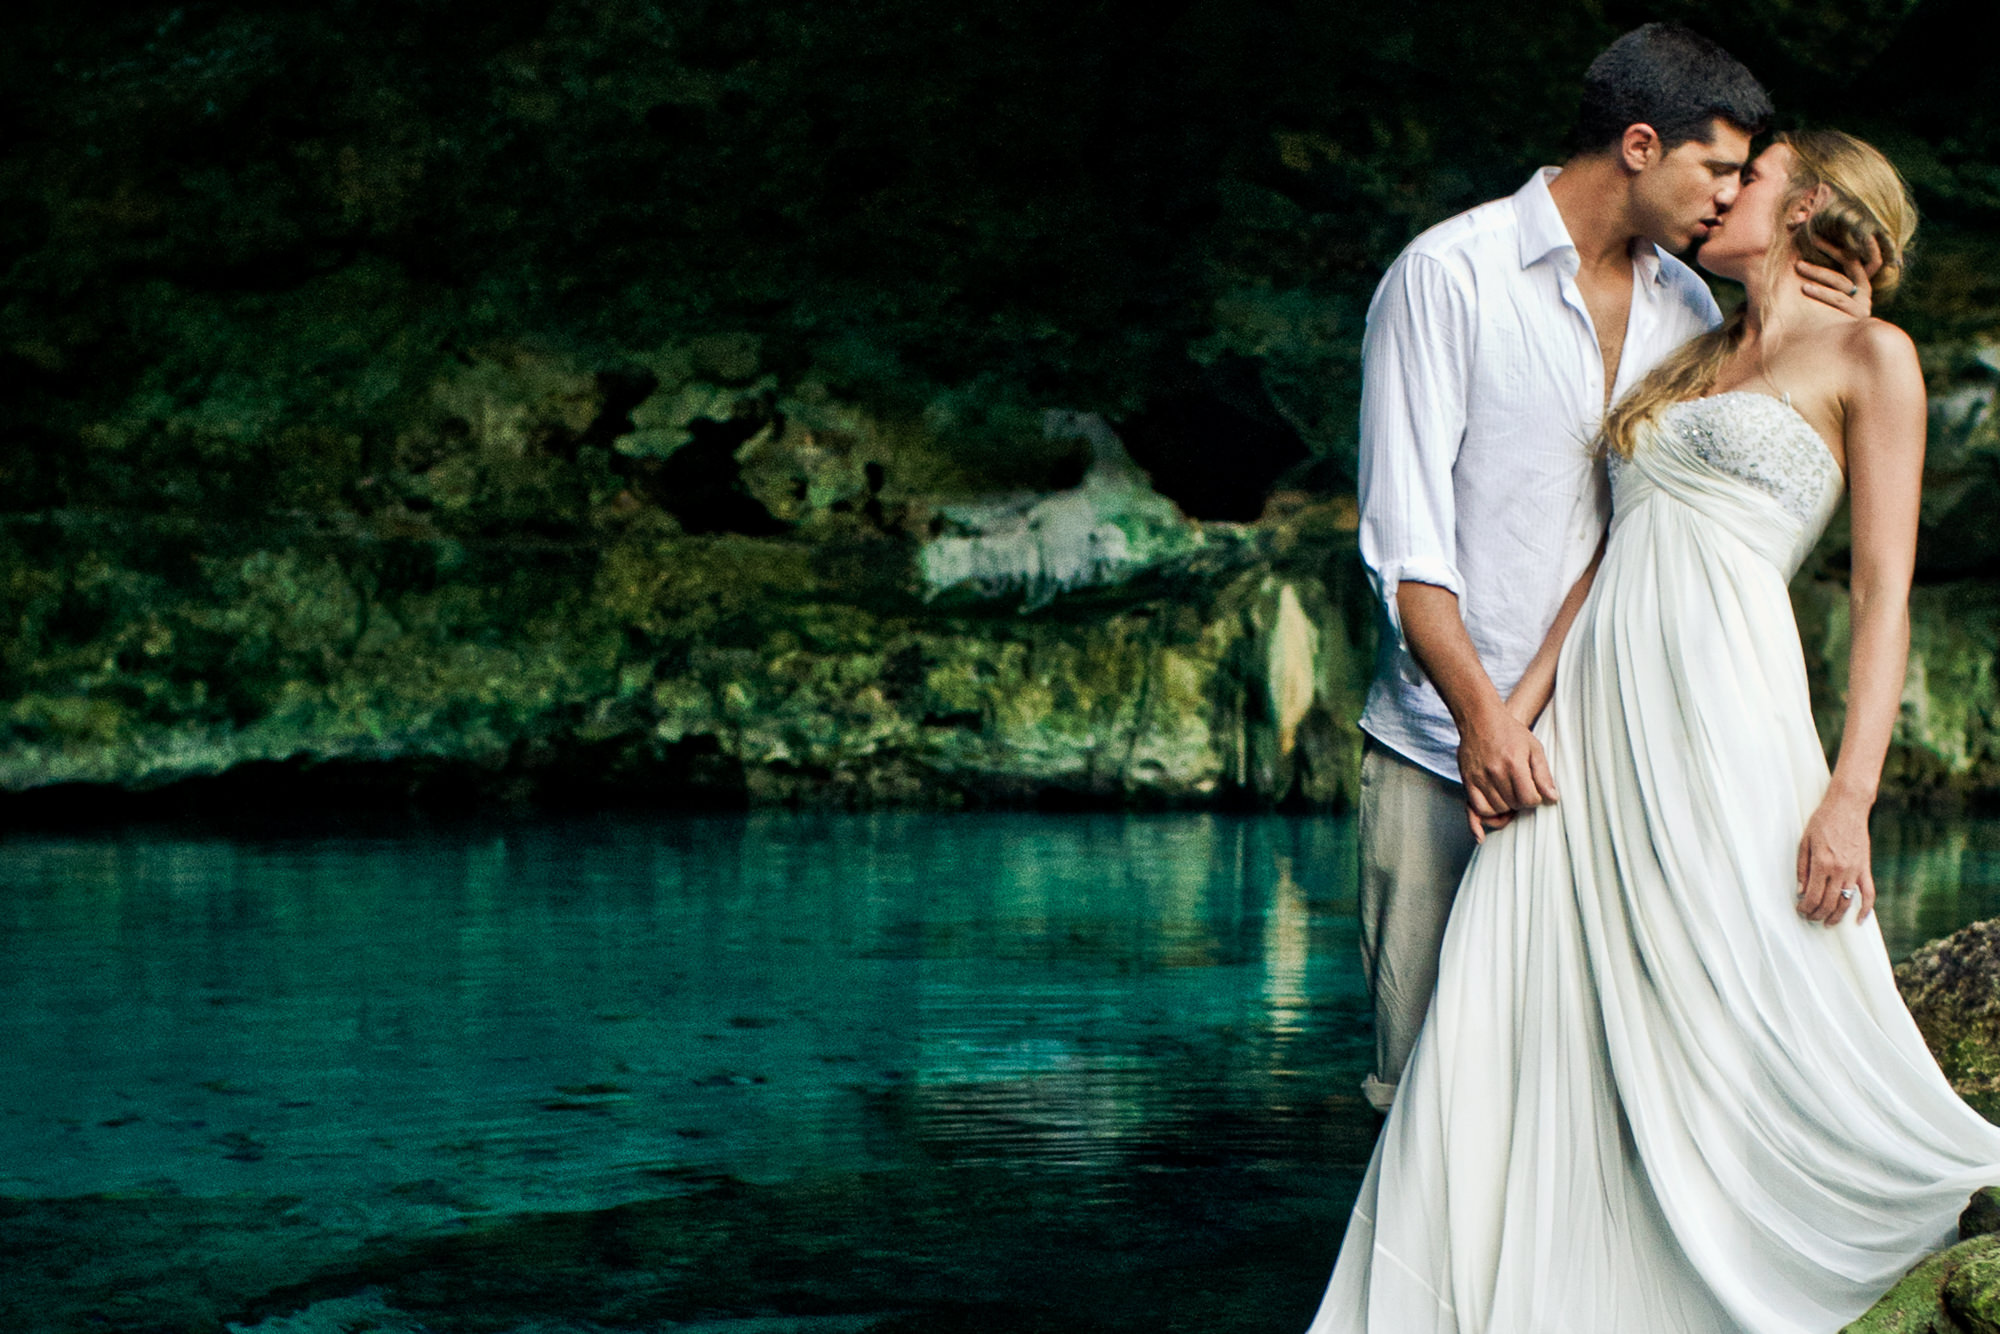 Bride and groom kiss by cenote - photo by JAG Studios